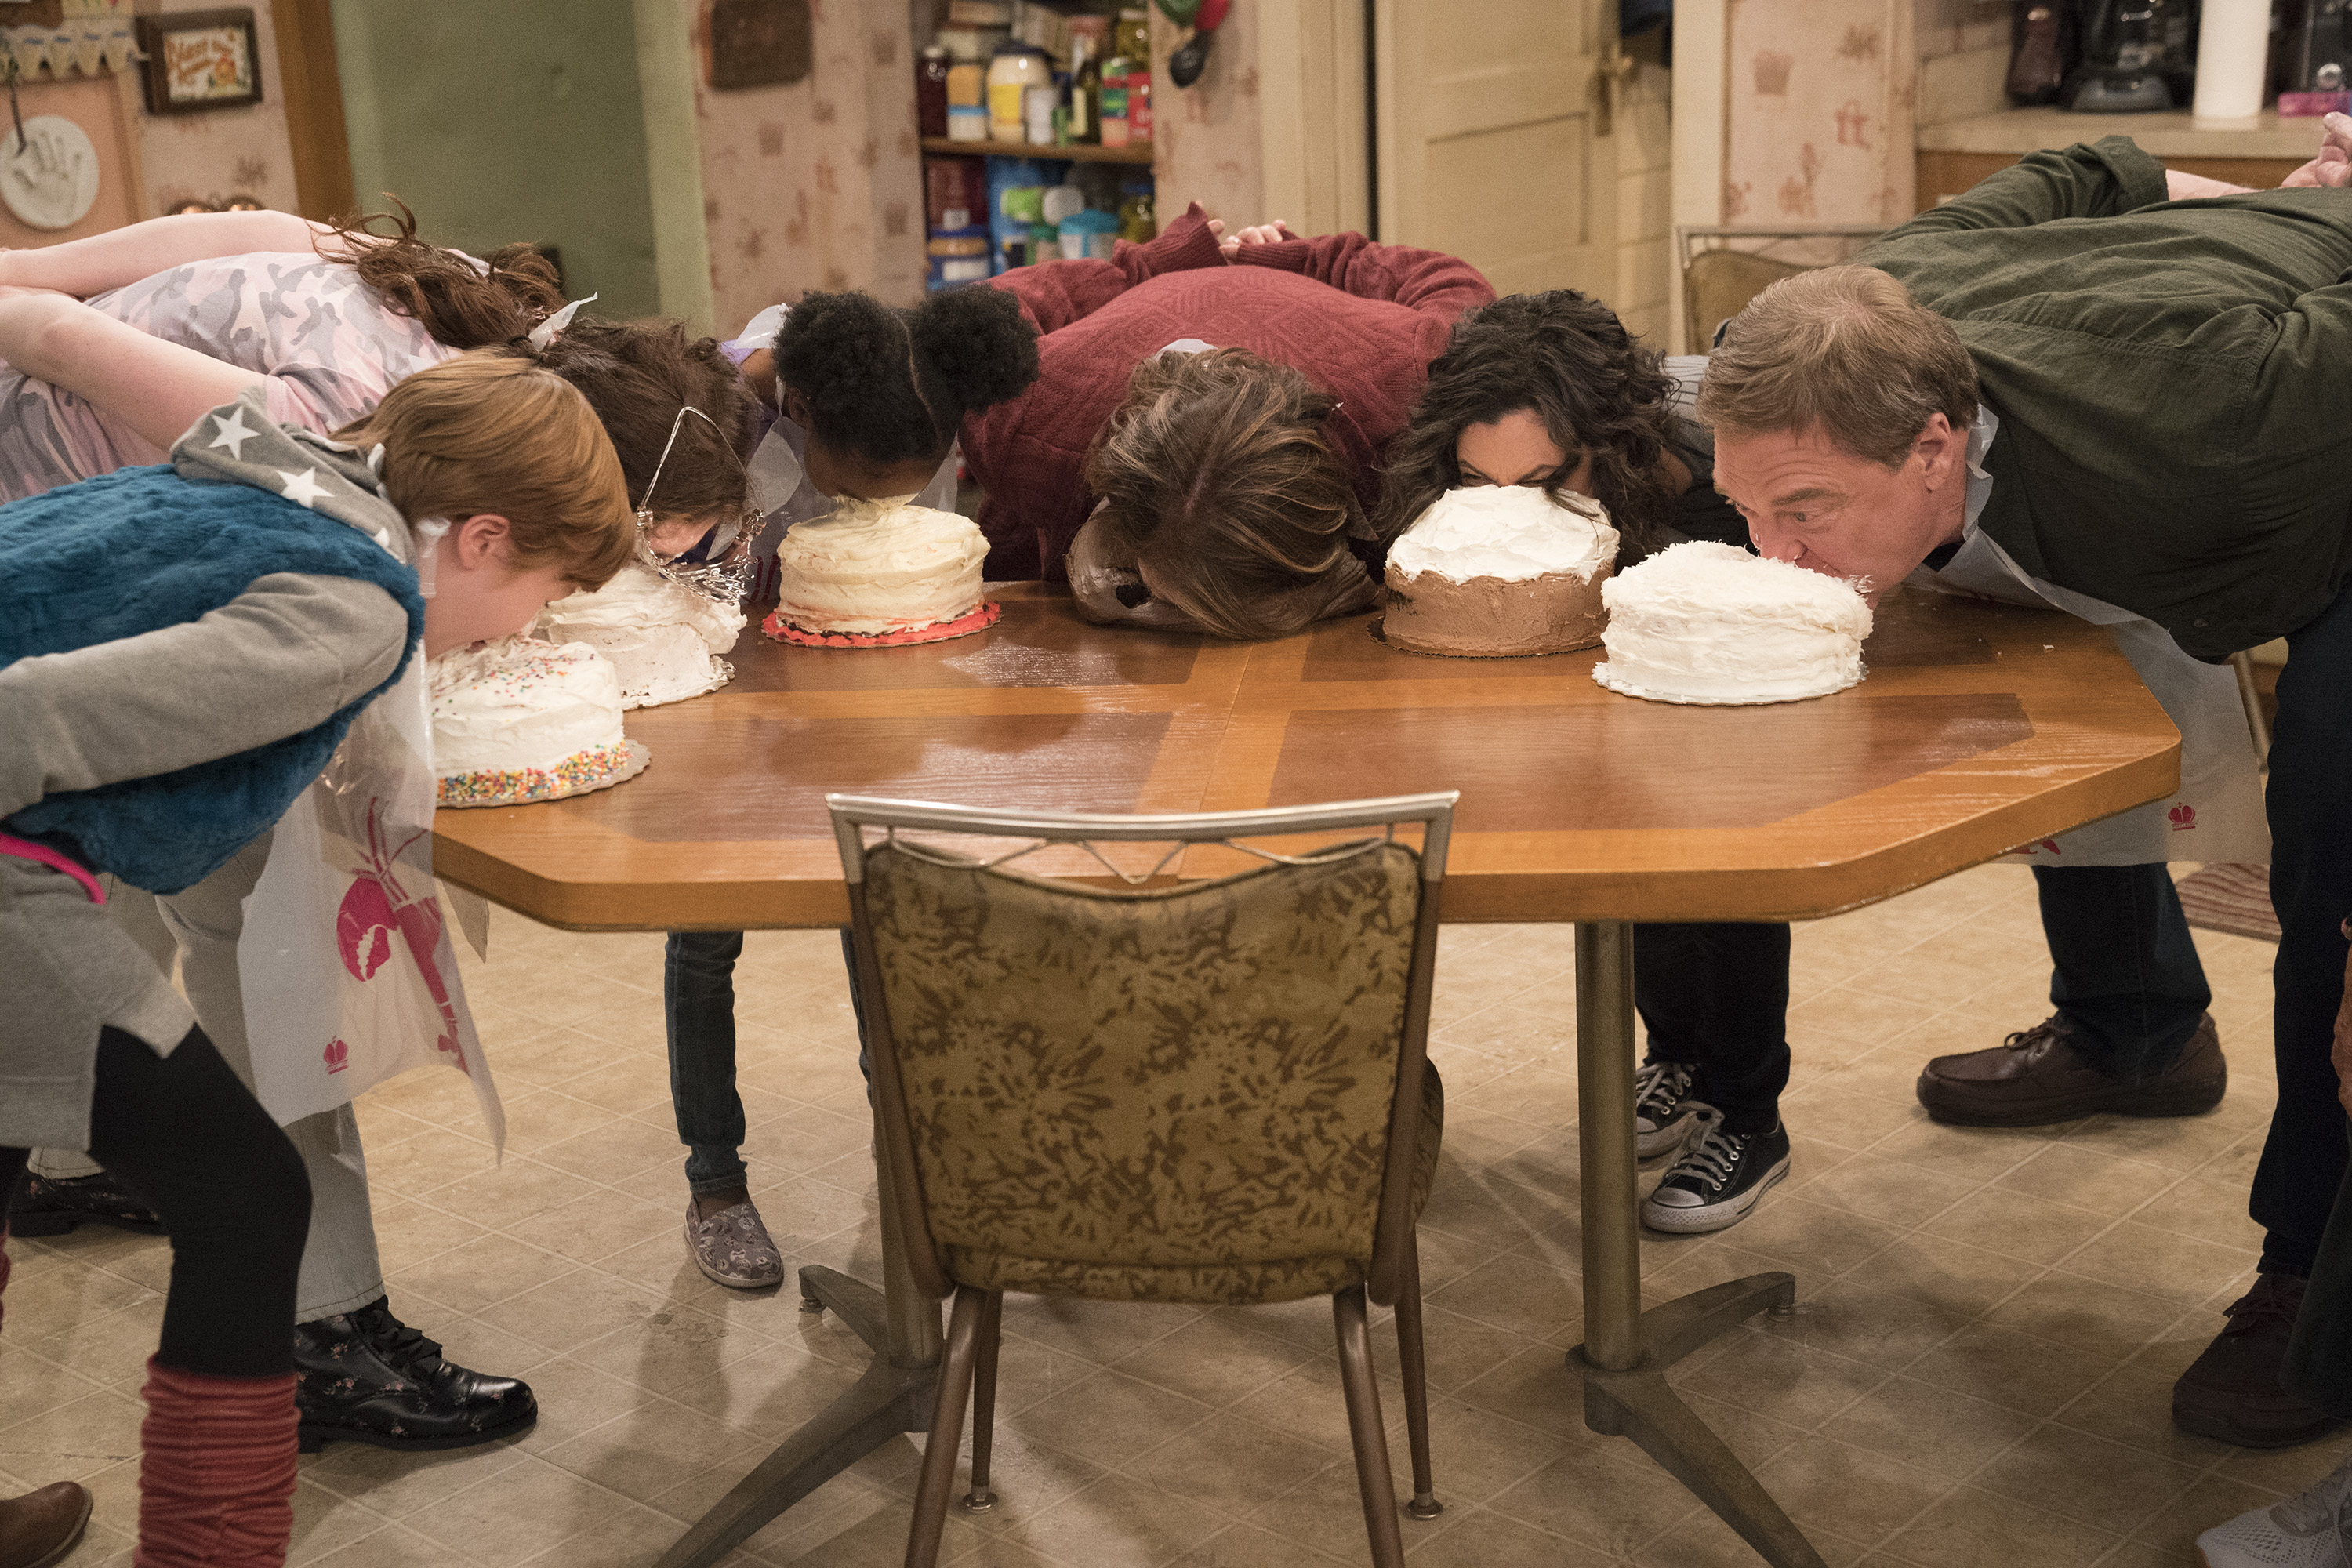 """ROSEANNE - """"Darlene v. David"""" - David unexpectedly shows up for Harris' birthday after being absent for years, forcing Darlene to re-examine their relationship and the rest of the family. Meanwhile, Roseanne and Jackie's mother, Bev, temporarily moves into the Conner home after an incident at the nursing home prevents her from returning, on the fifth episode of the revival of """"Roseanne,"""" TUESDAY, APRIL 17 (8:00-8:30 p.m. EDT), on The ABC Television Network. (ABC/Greg Gayne)AMES MCNAMARA, EMMA KENNEY, JAYDEN REY, ROSEANNE BARR, SARA GILBERT, JOHN GOODMAN"""